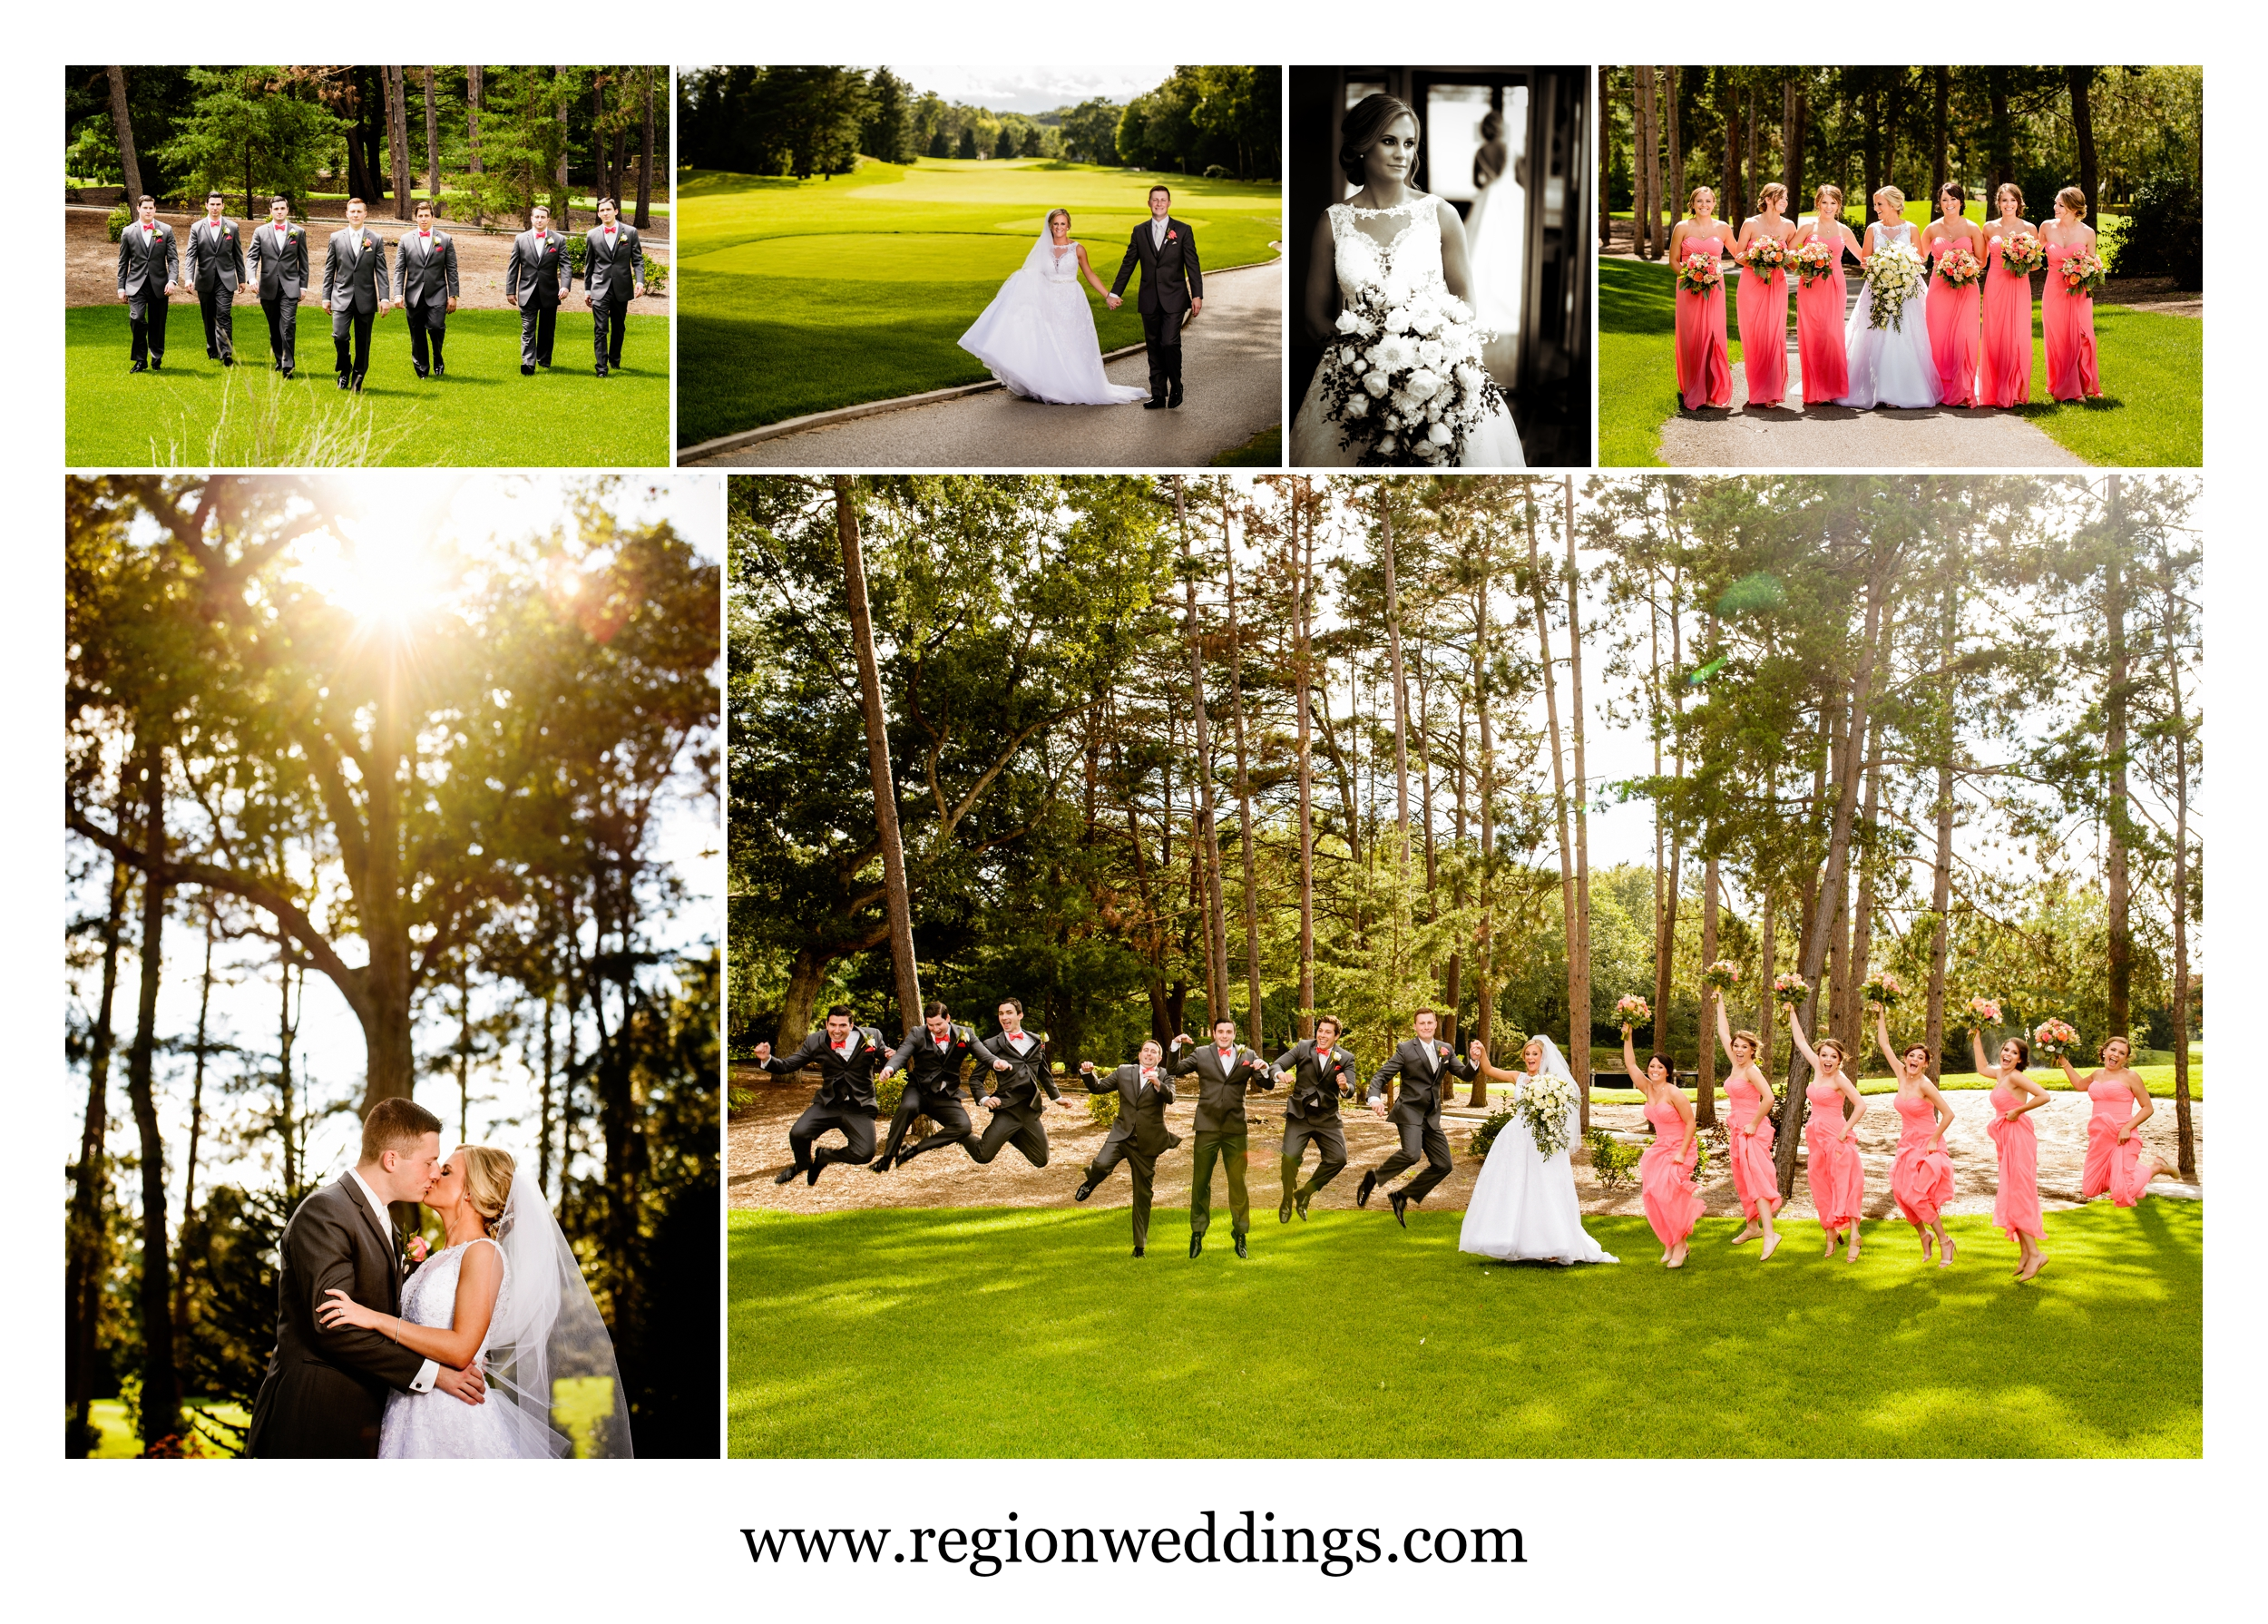 Wedding photos at The Pavilion At Sandy Pines in Demotte, Indiana.